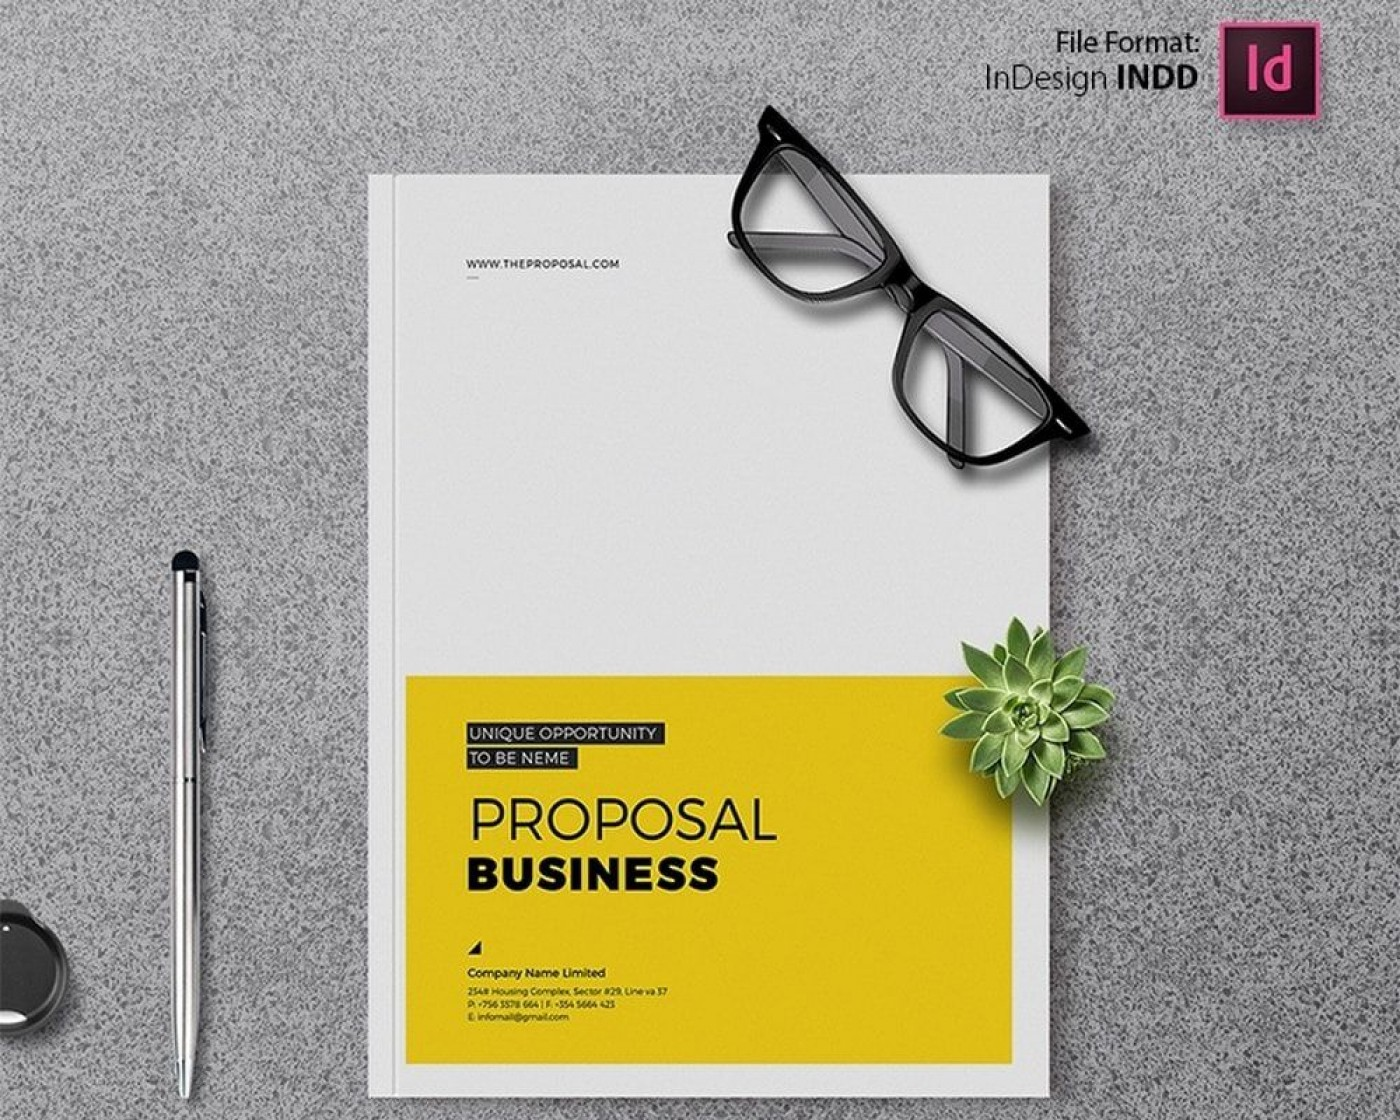 004 Archaicawful Busines Brochure Design Template Free Download Inspiration 1400